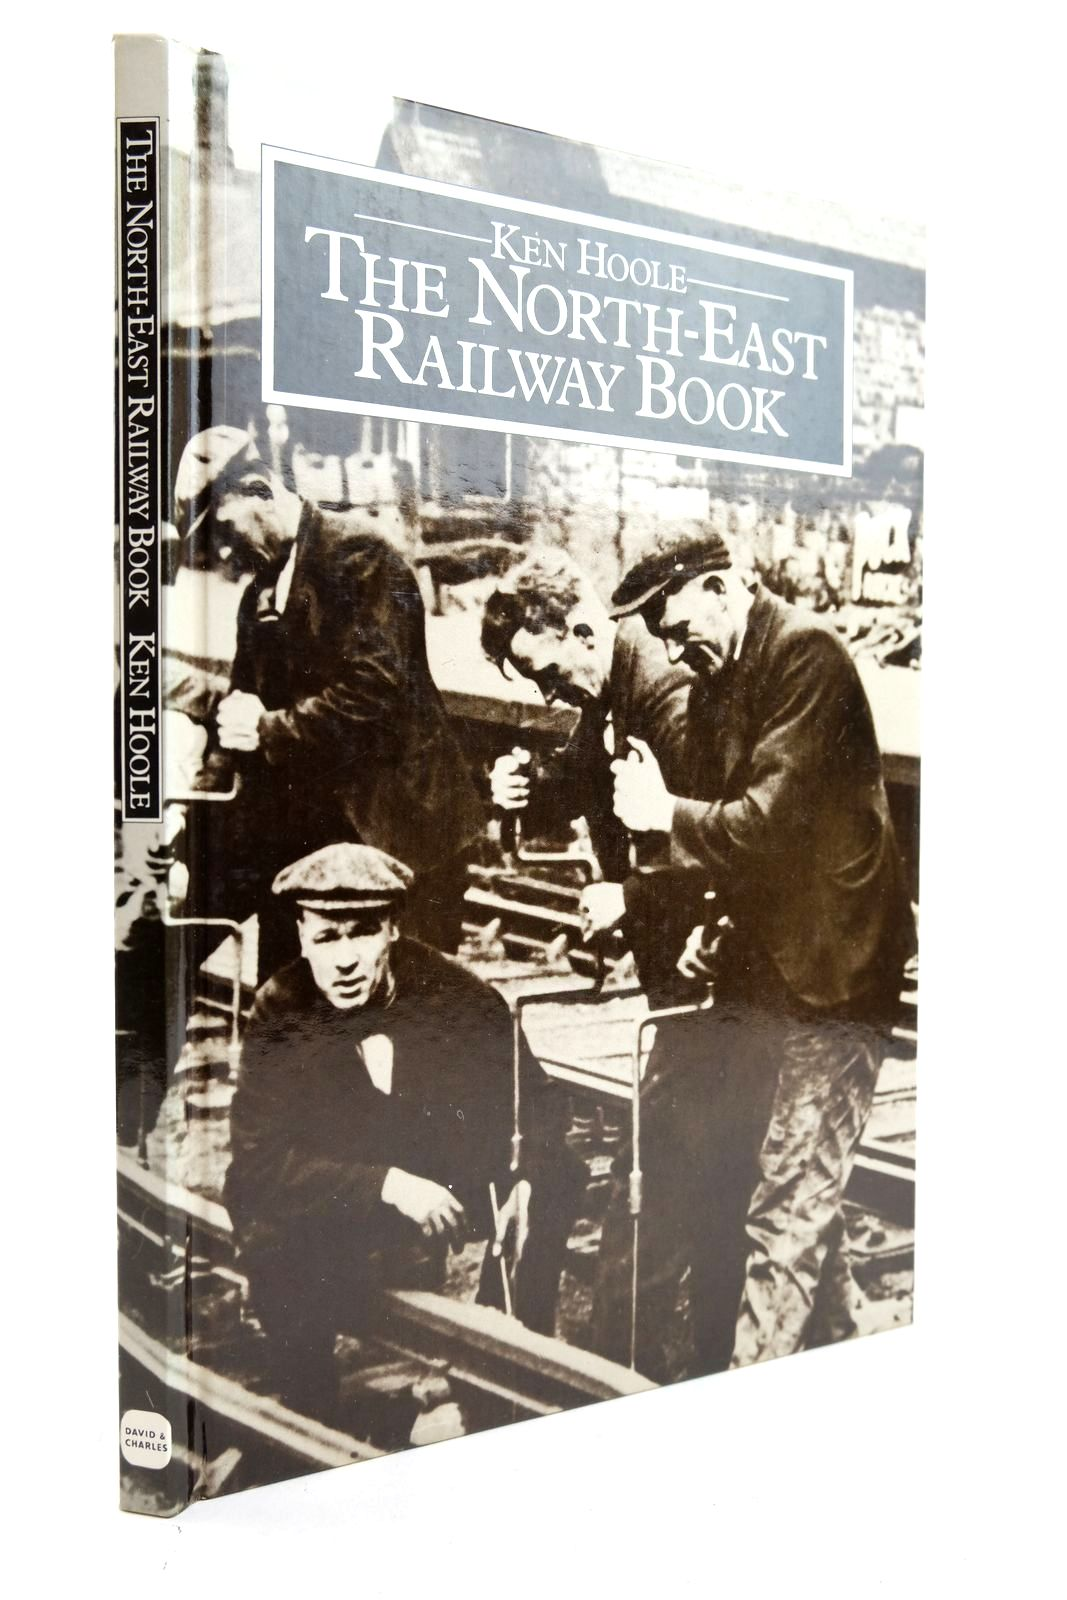 Photo of THE NORTH EAST RAILWAY BOOK written by Hoole, Ken published by David & Charles (STOCK CODE: 2133105)  for sale by Stella & Rose's Books